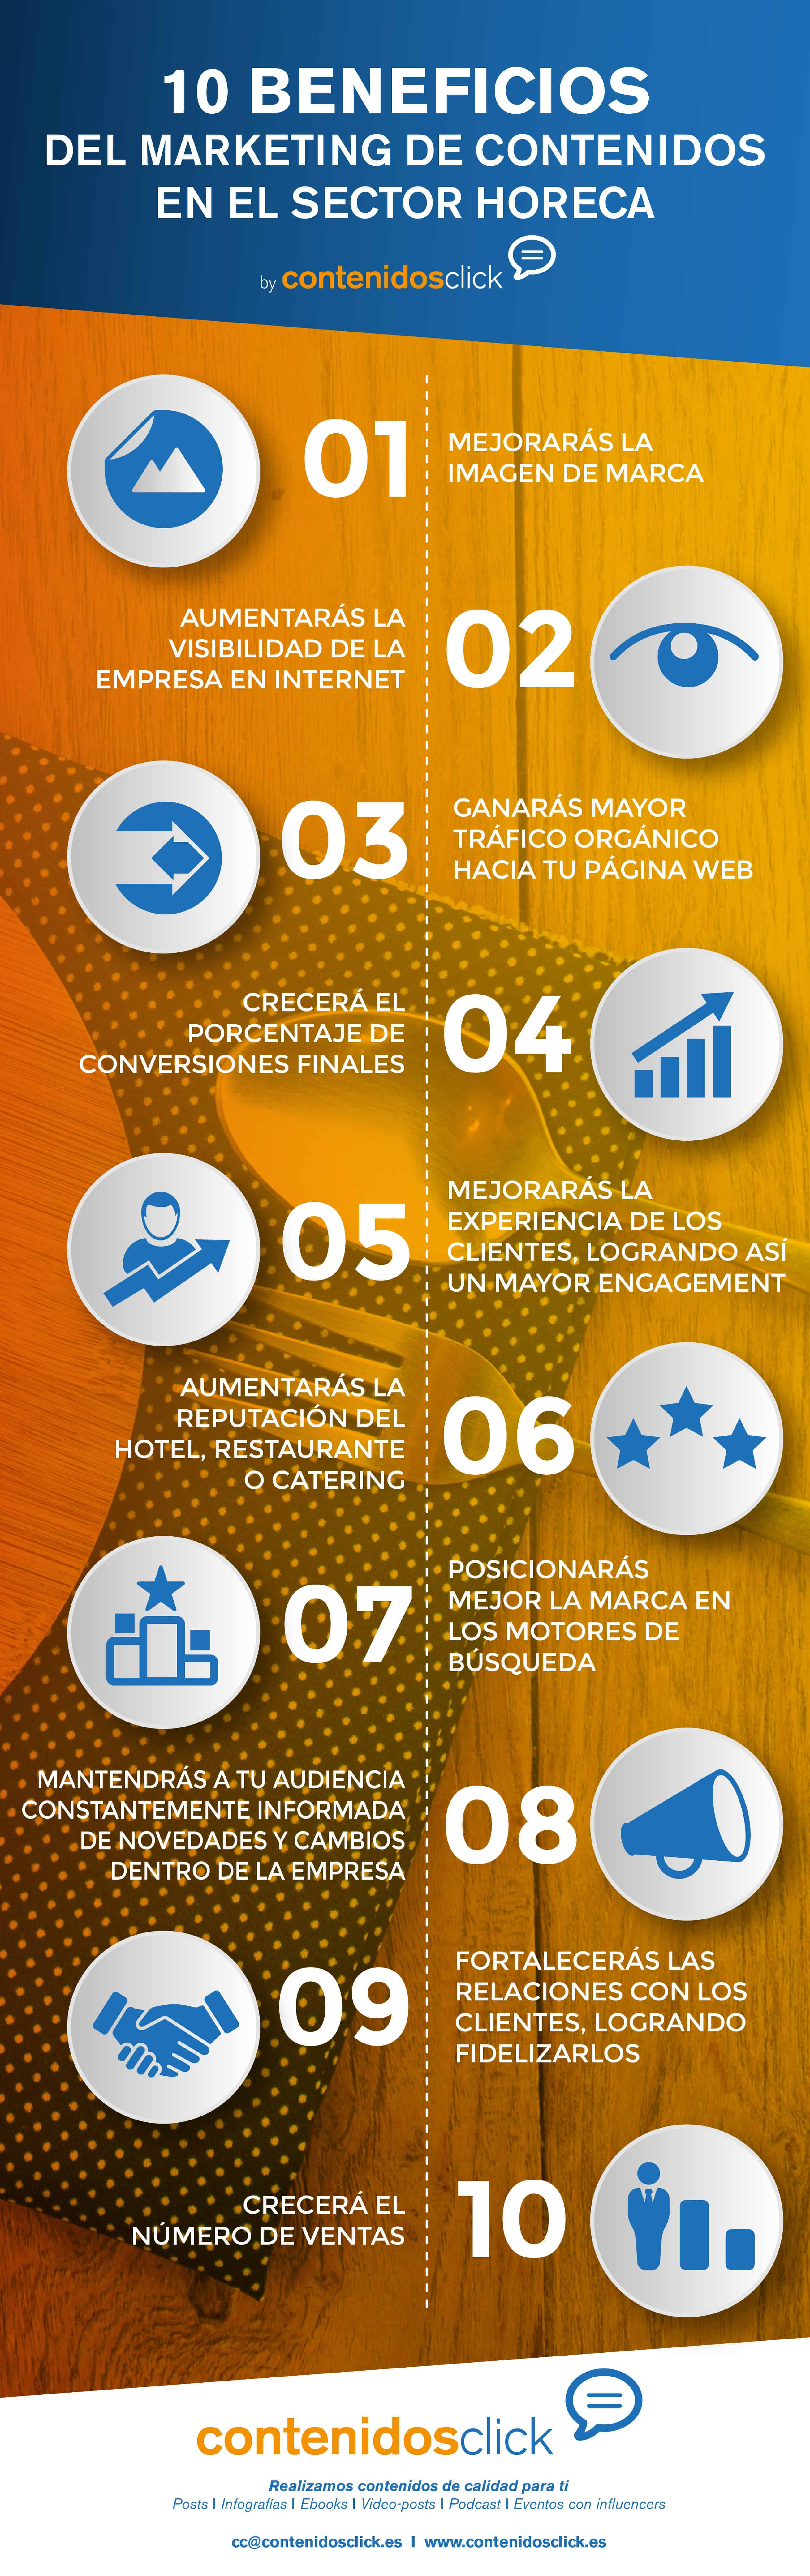 marketing de contenidos sector horeca